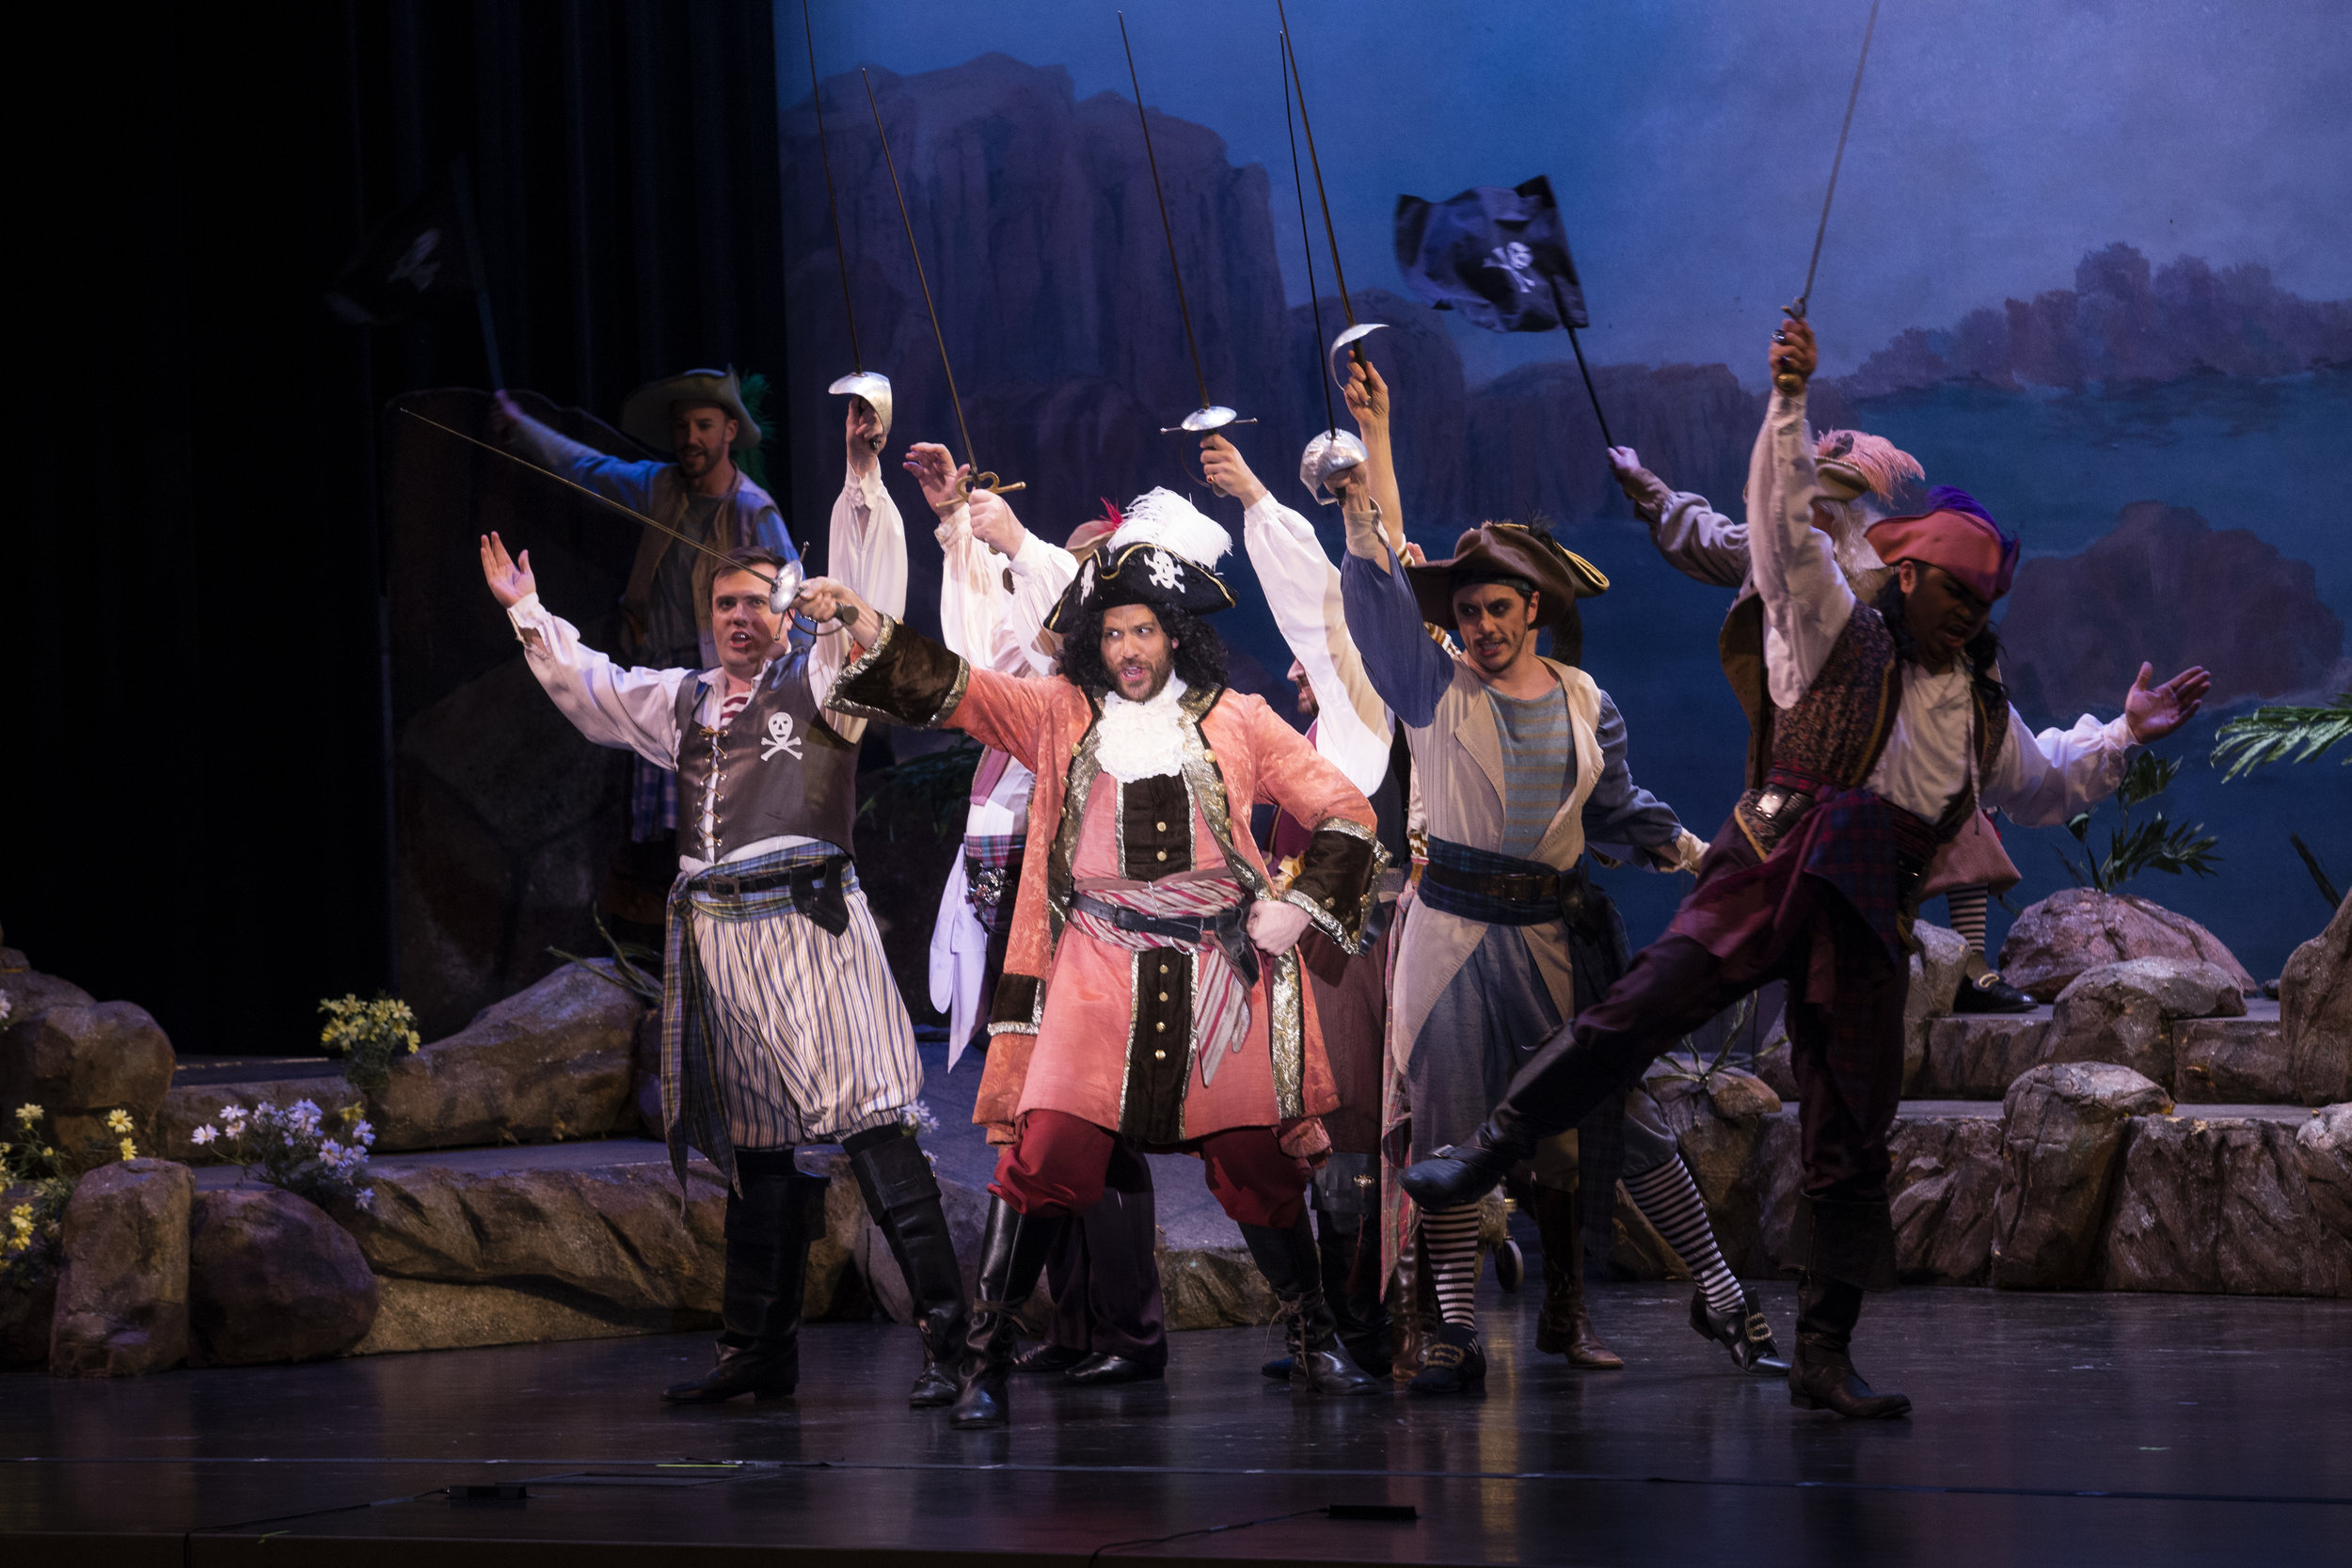 For I am a Pirate King  - David Wannen and Men's Ensemble ( photo by William Reynolds )